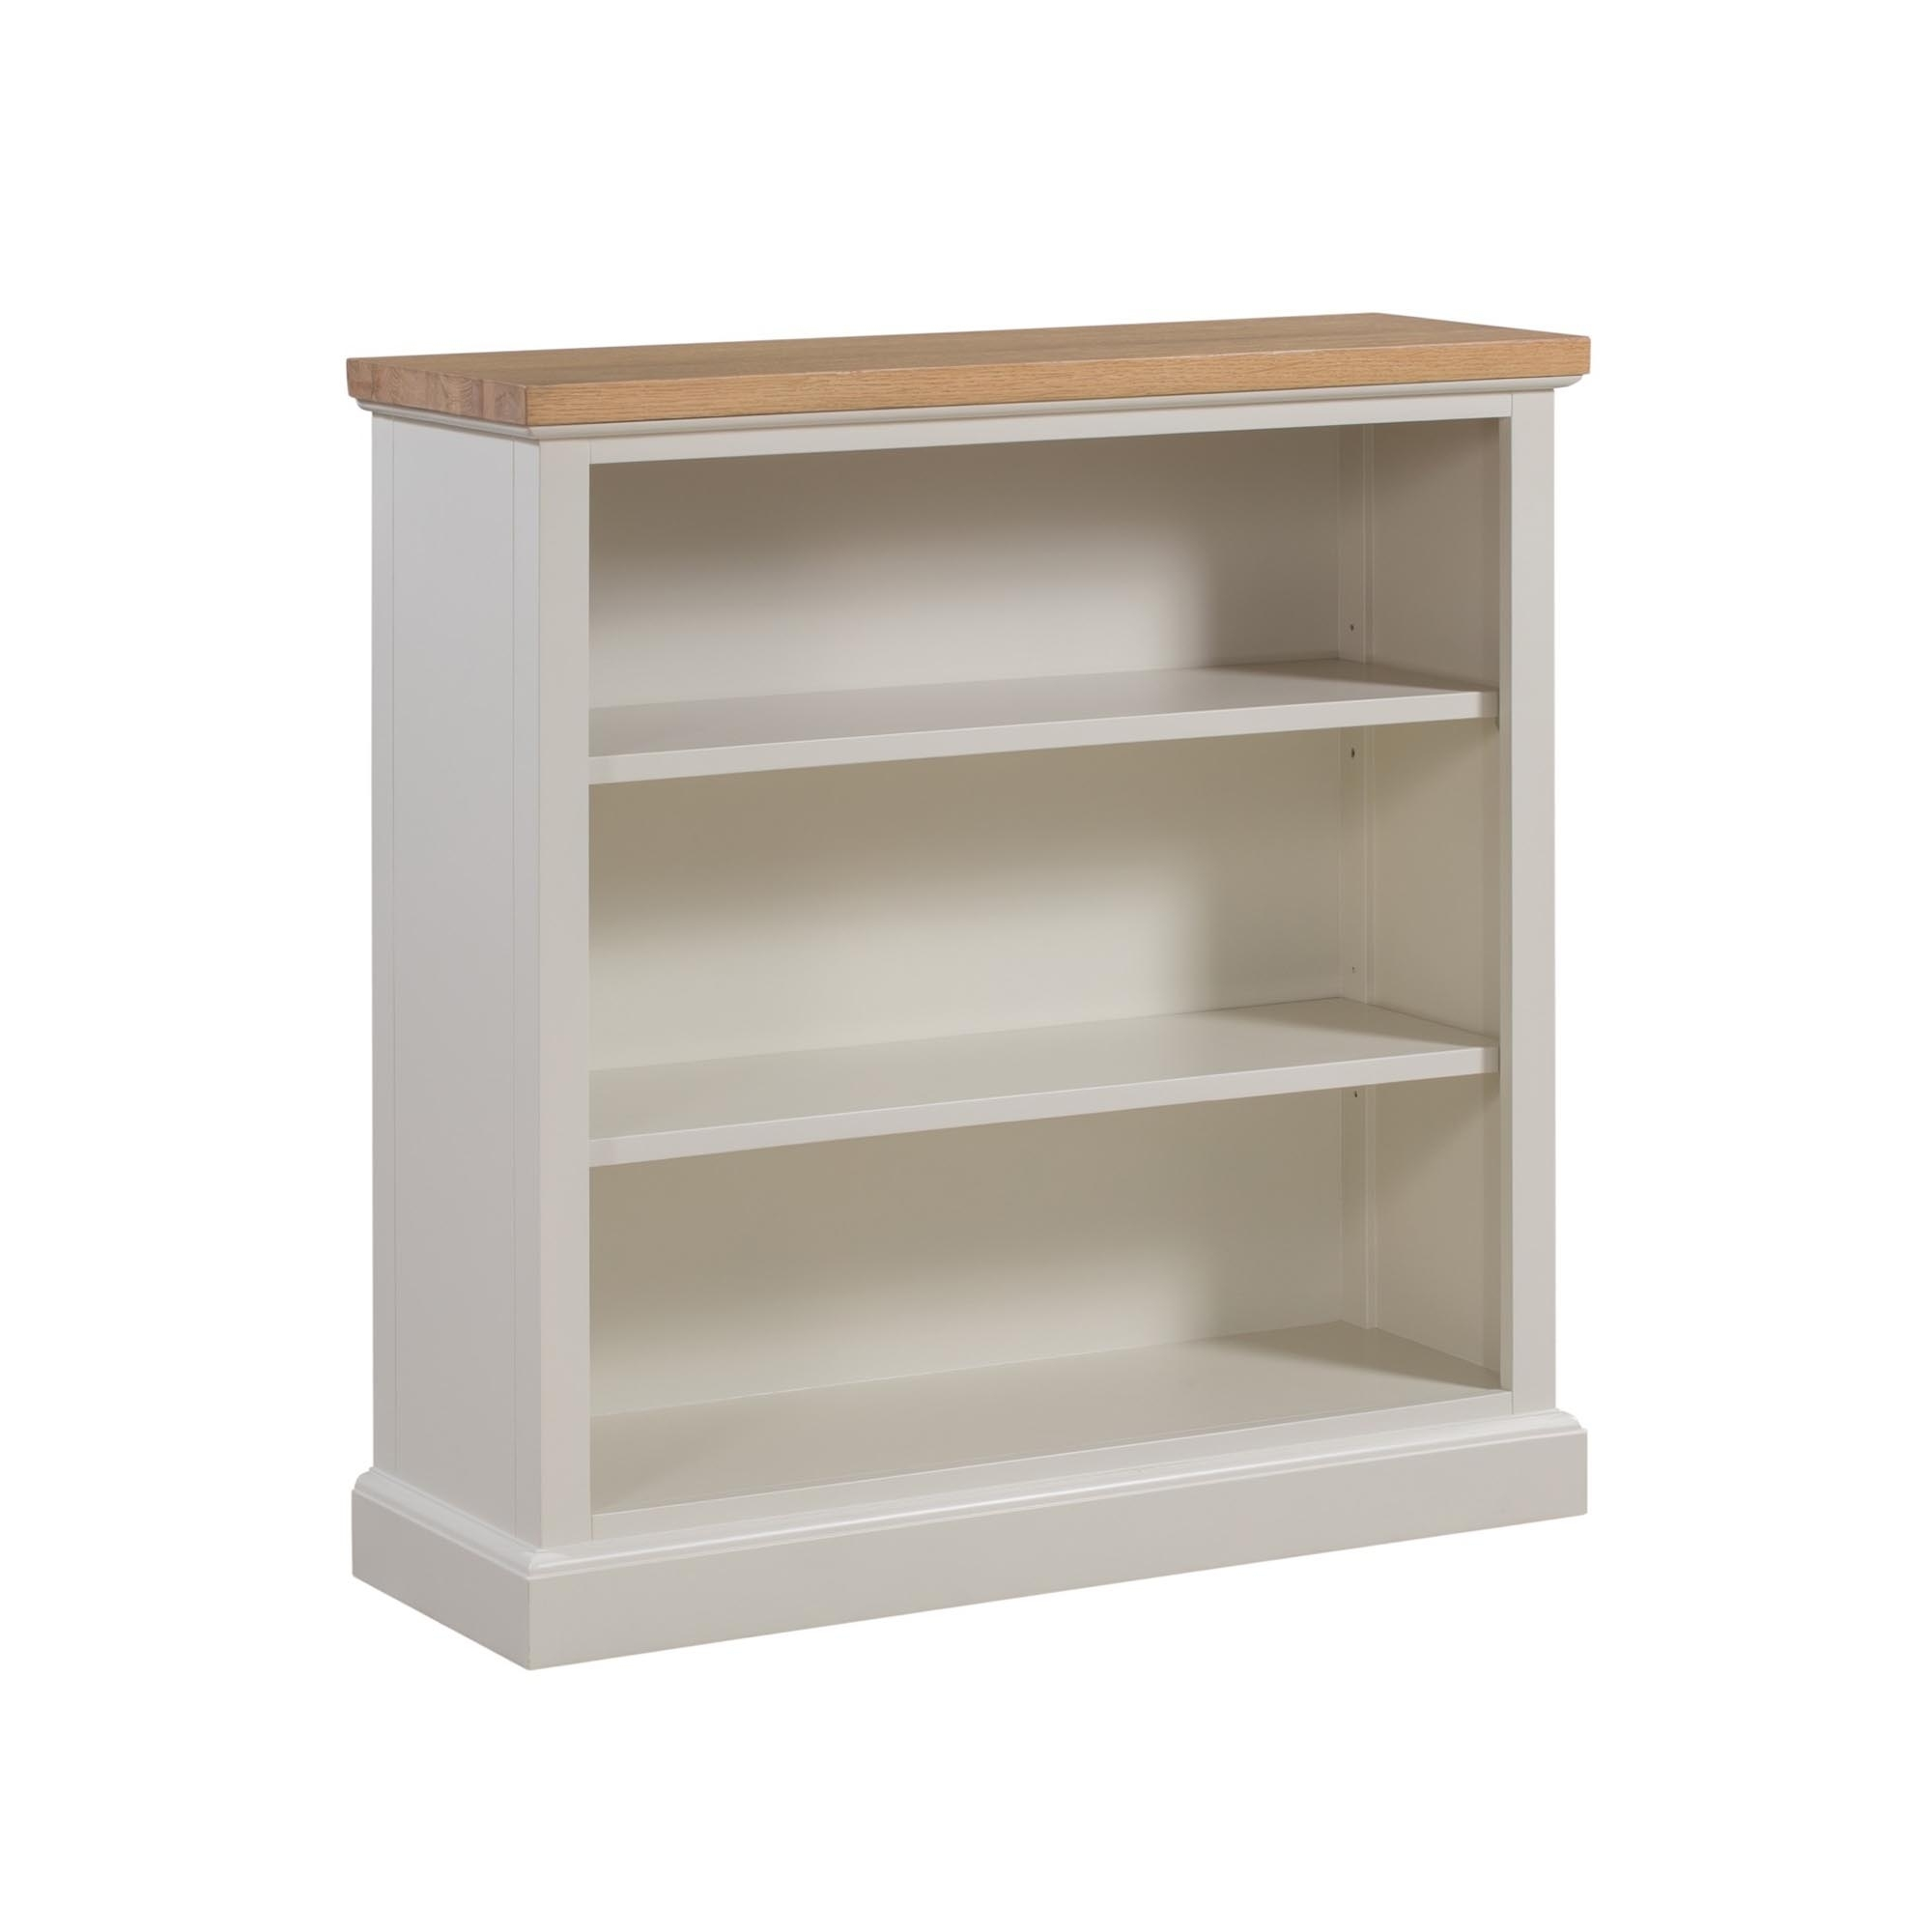 Ripley Shabby Chic Low Bookcase